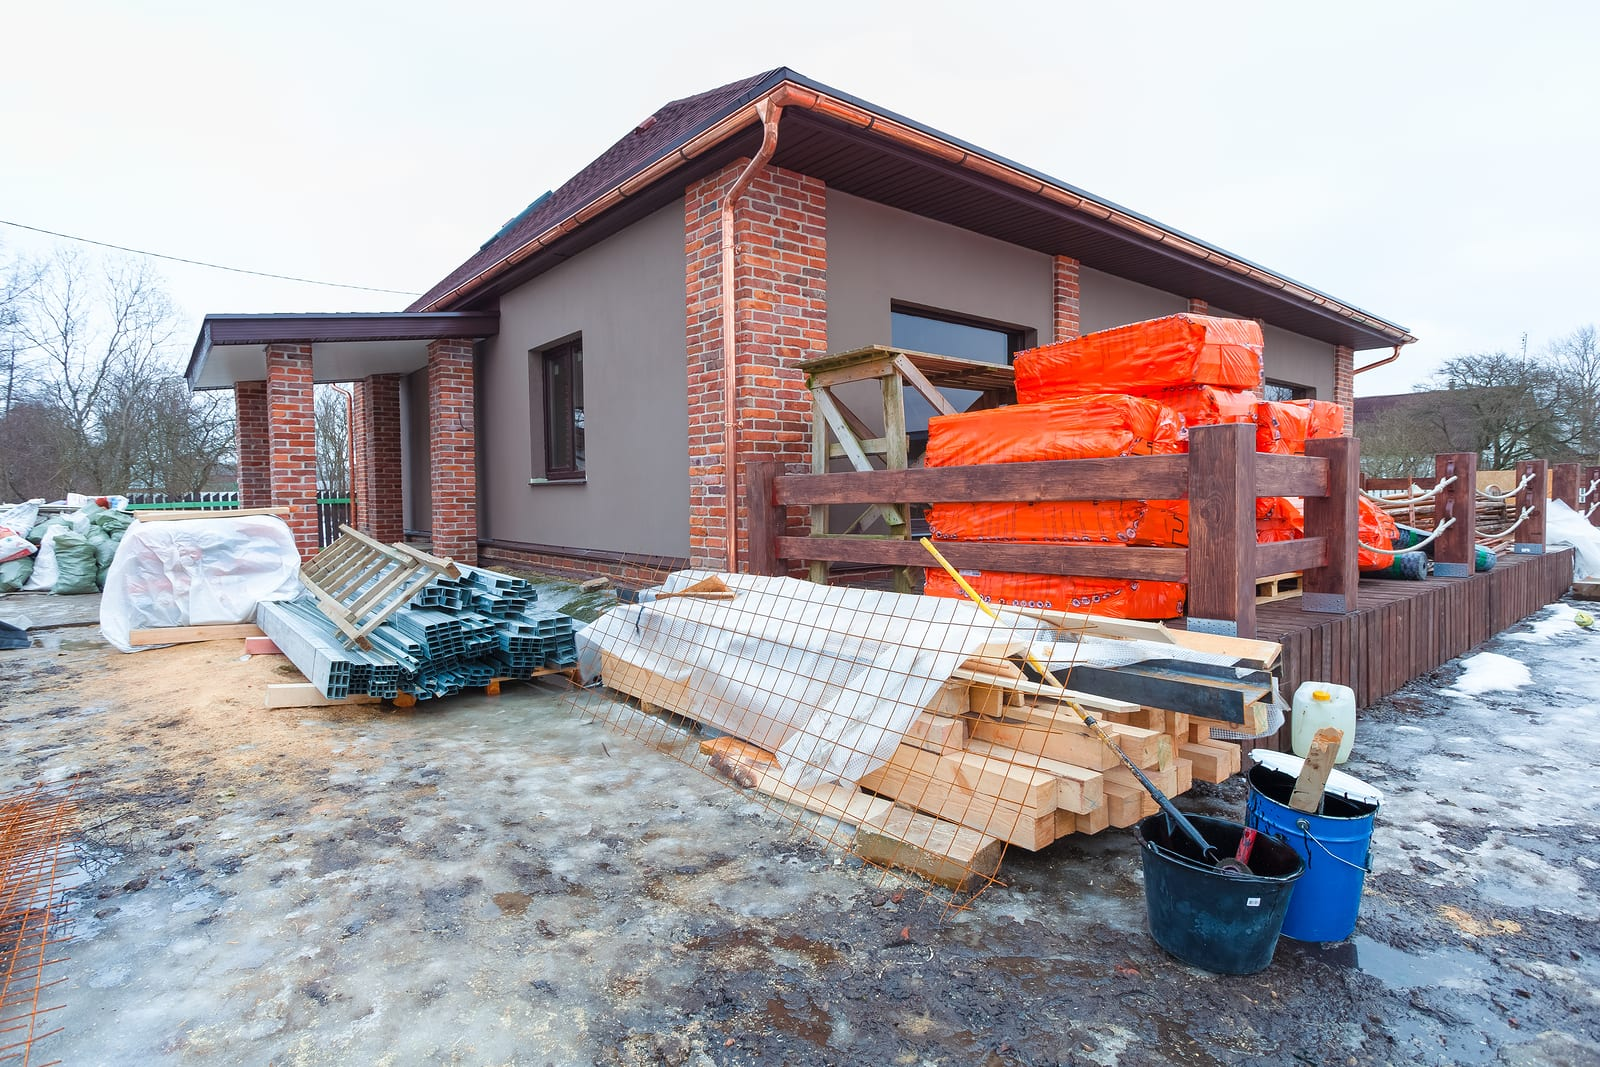 The modern house with terrace is under construction (remodel) and construction material for renovation are outside